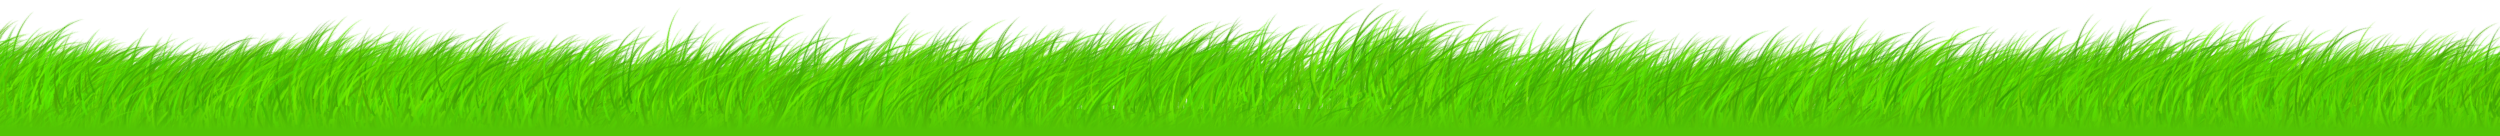 grass-w2500.png